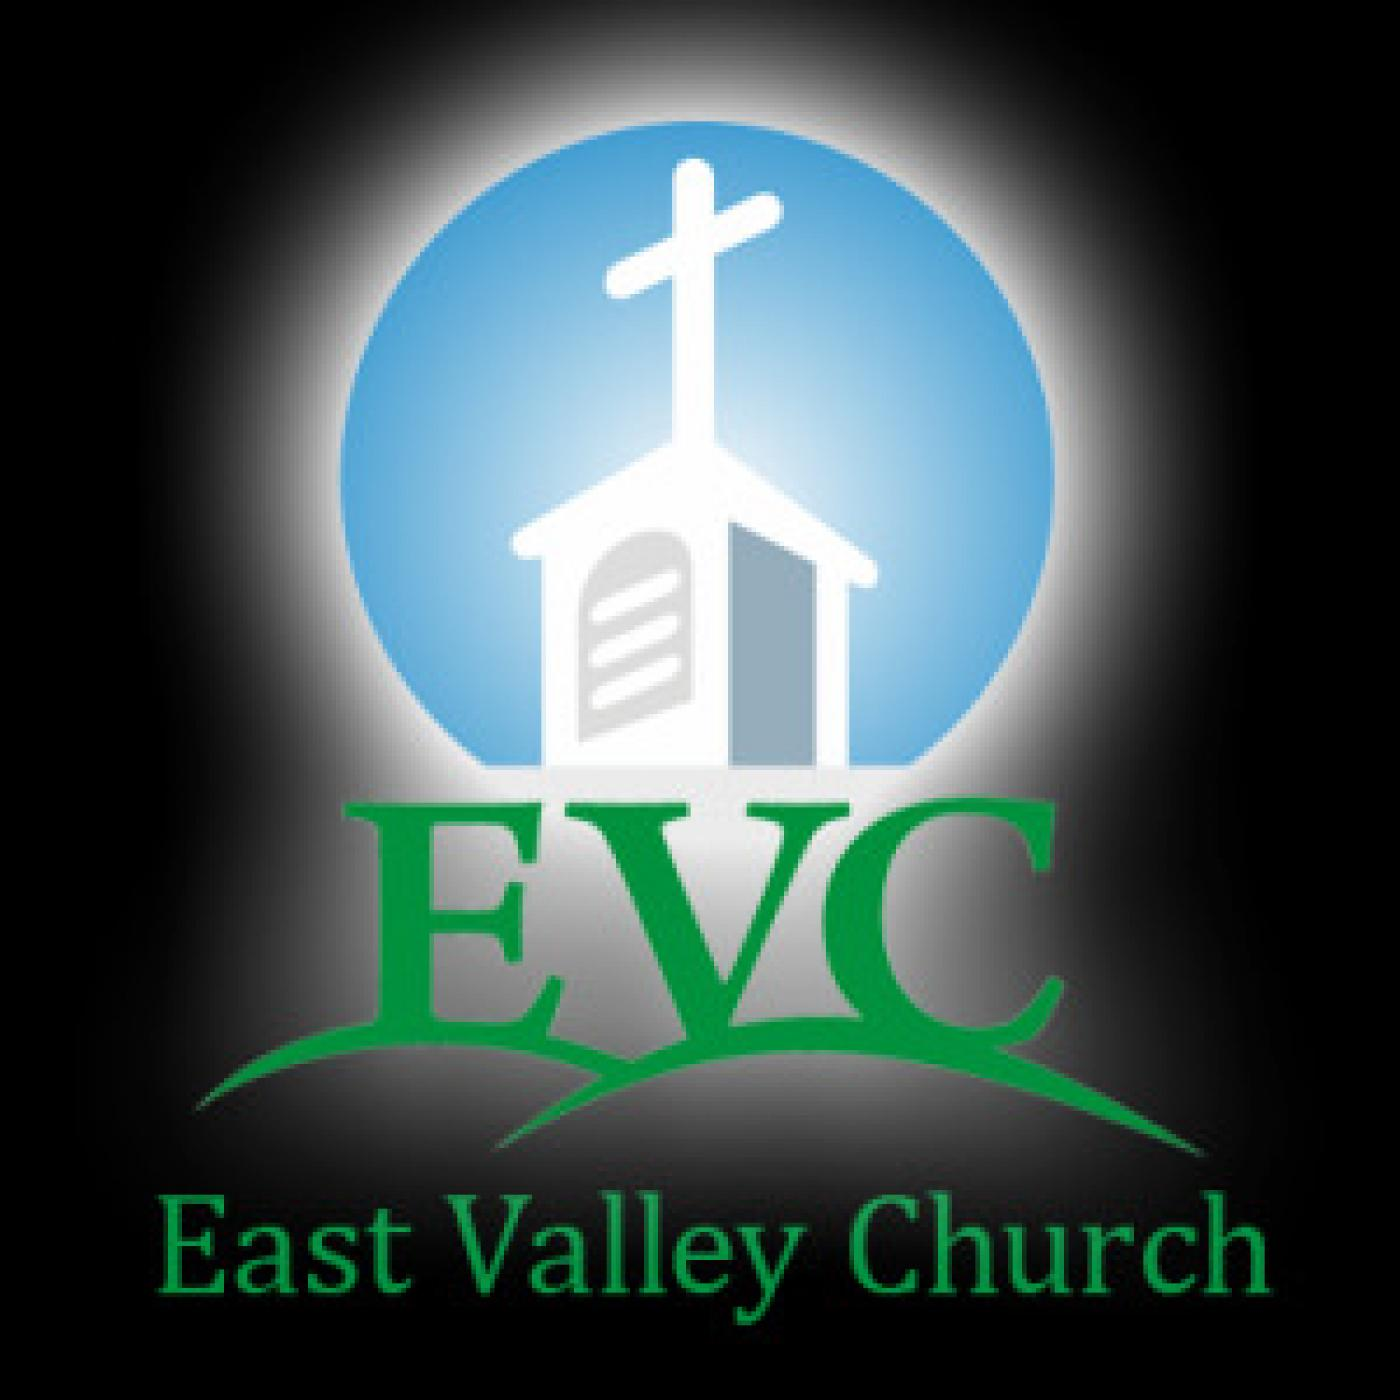 East Valley Church (San Jose, CA)